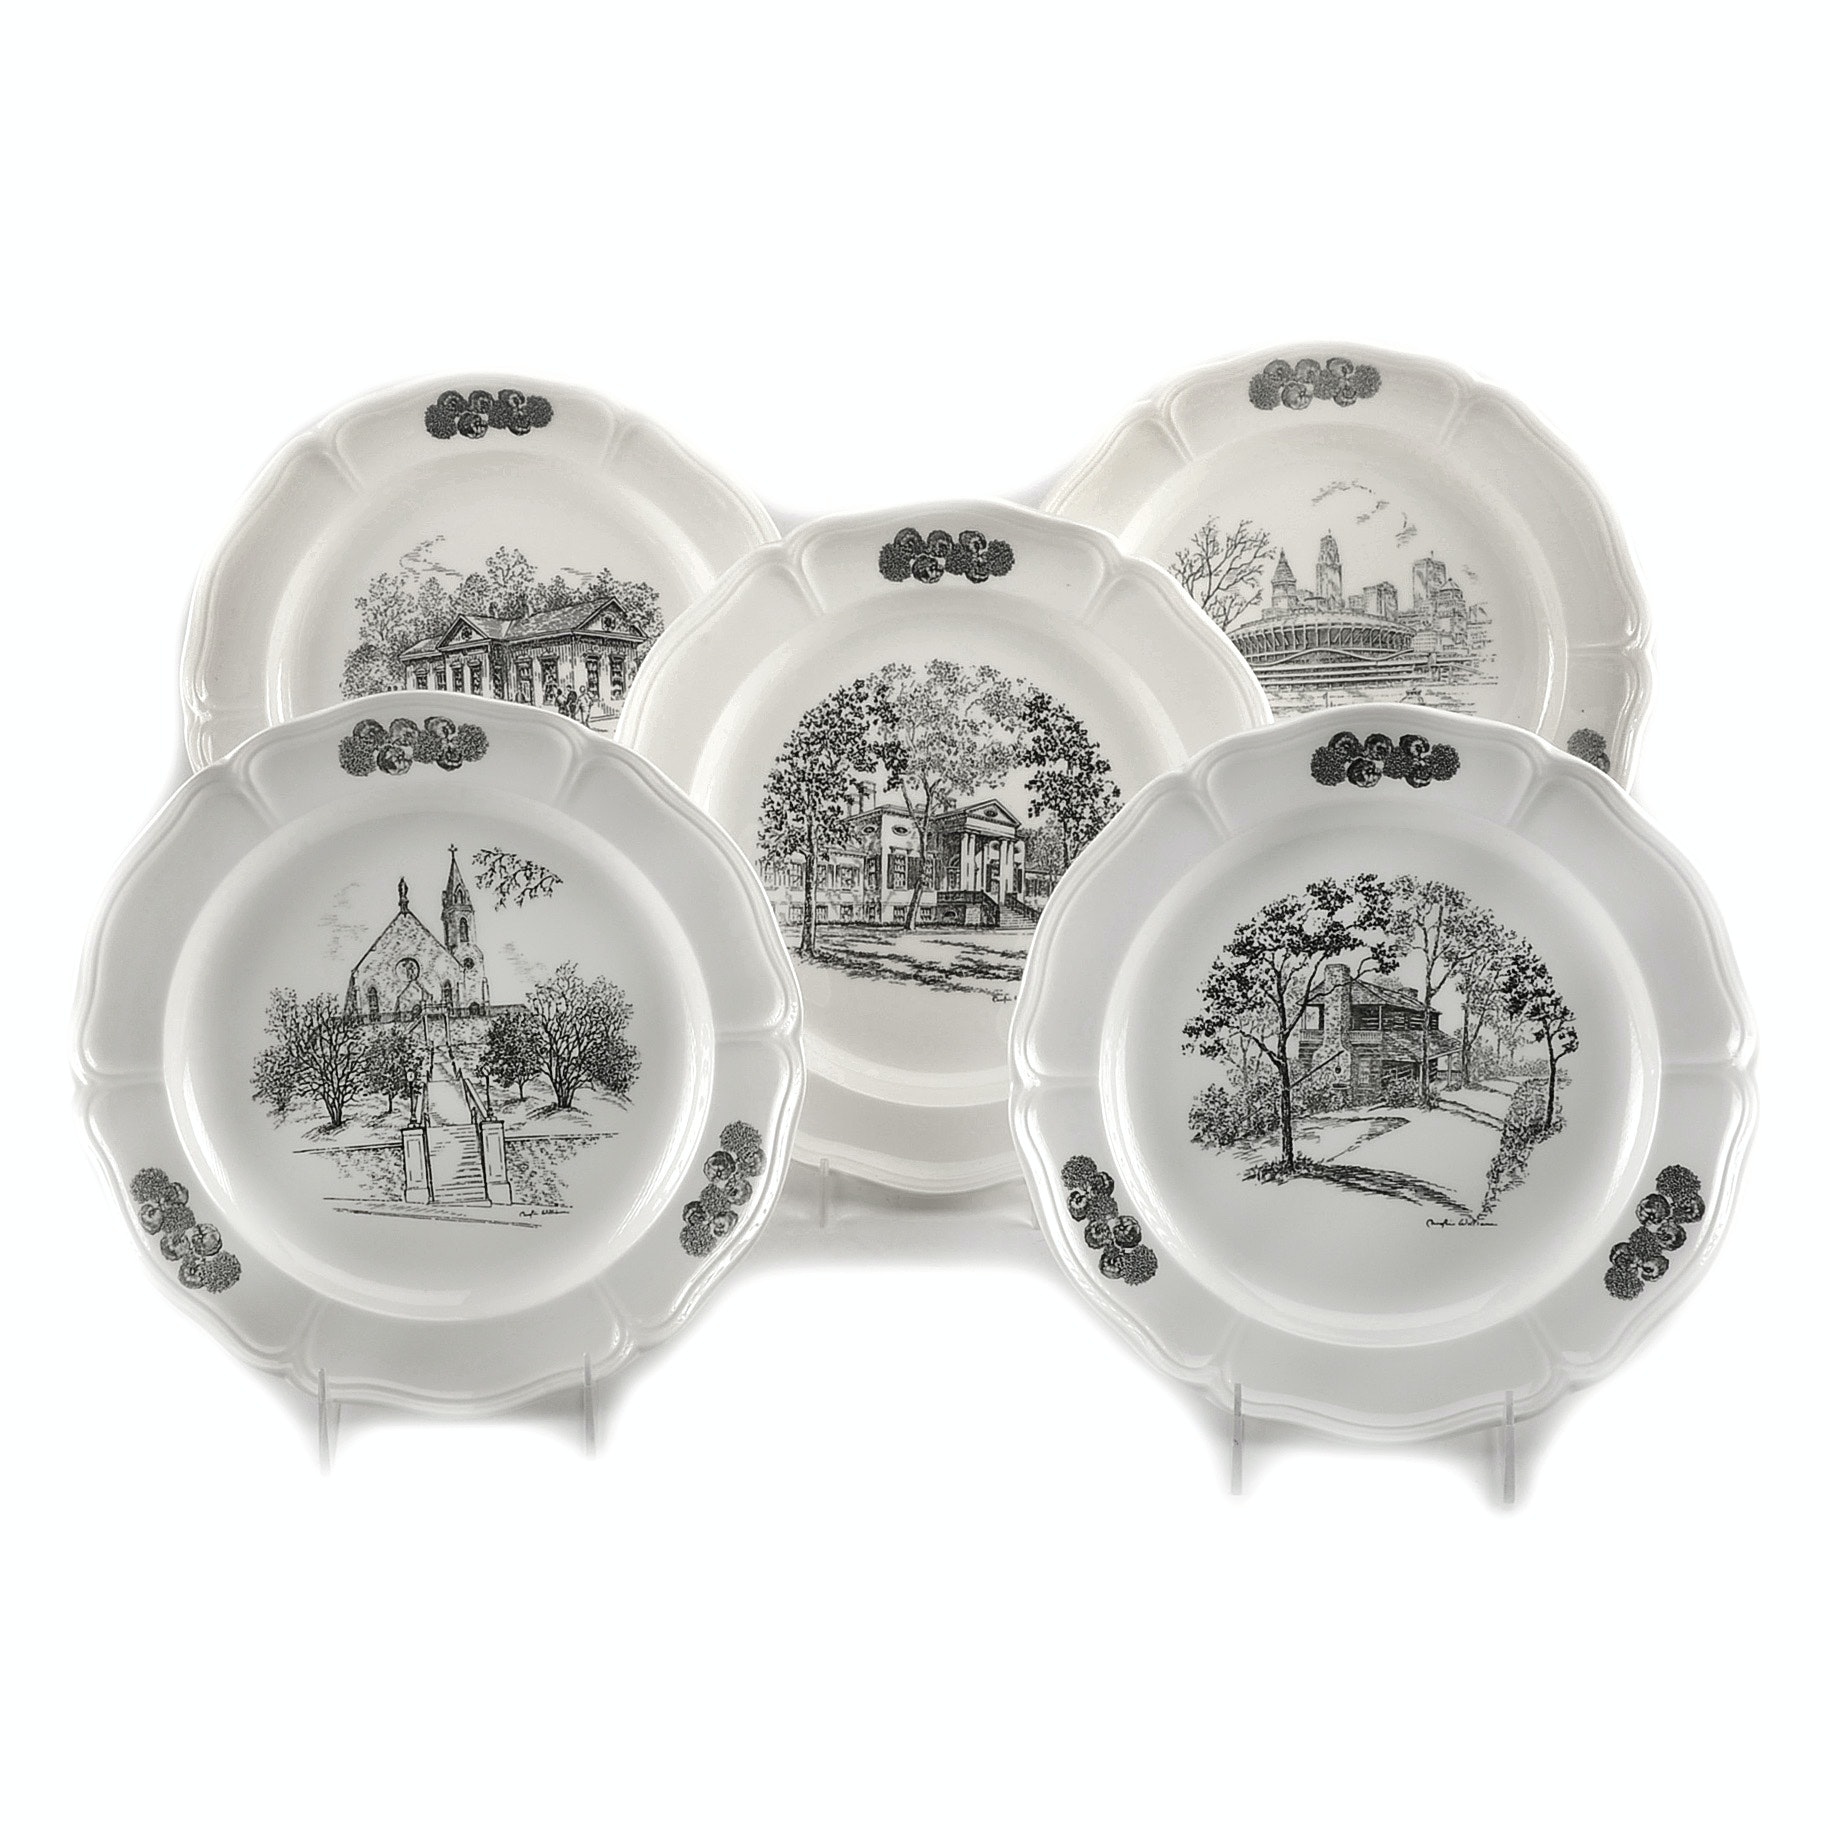 Group of Caroline Williams Cincinnati Collectible Plates by Wedgwood